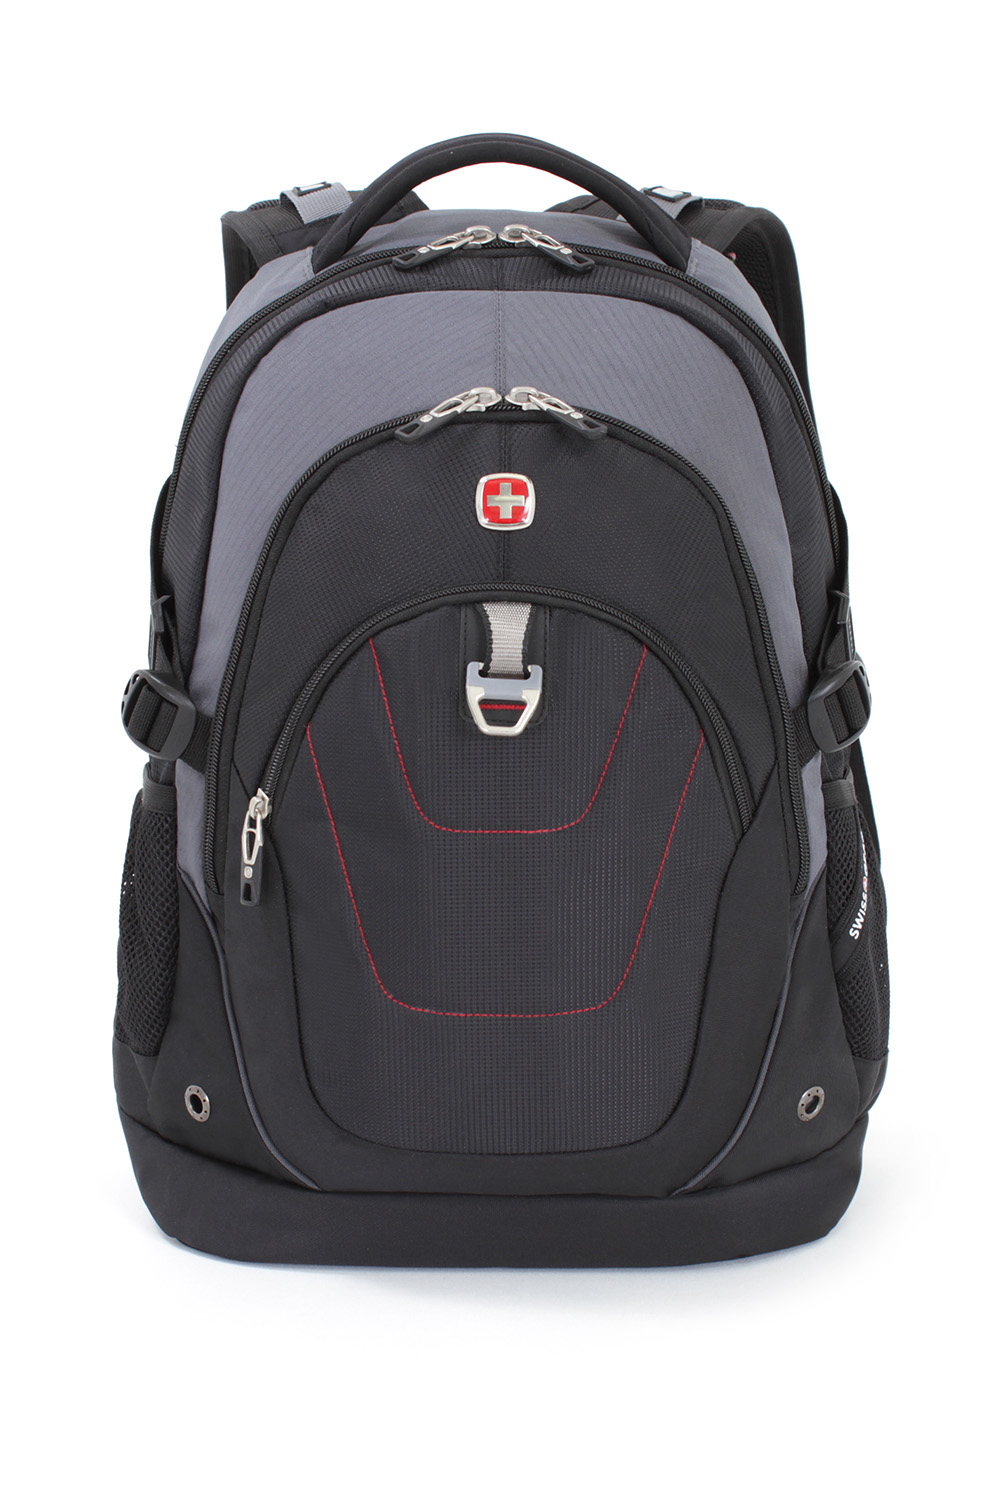 SWISSGEAR 3116 Deluxe Laptop Backpack